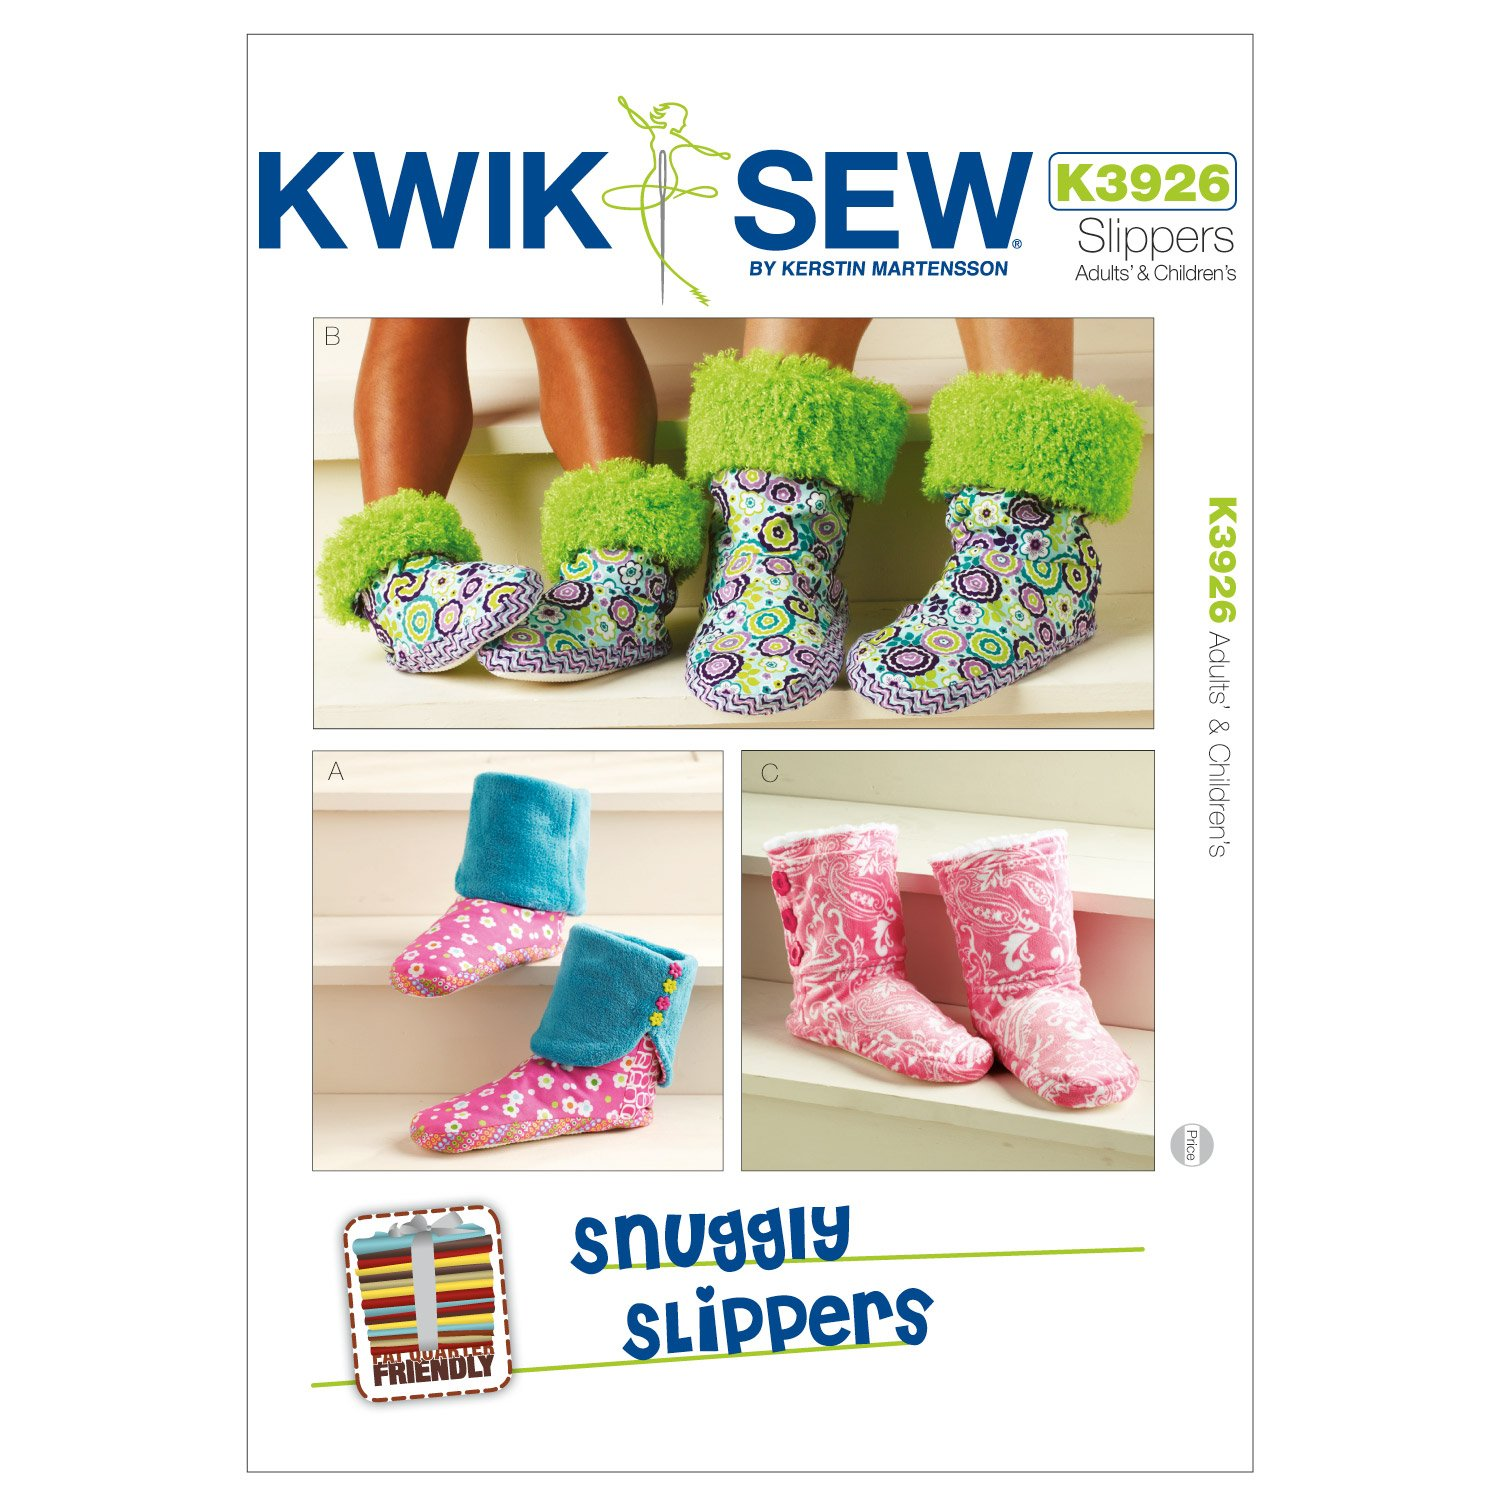 Kwik Sew K3926 Snuggly Slippers Sewing Pattern, Size Adult and Children XS-S-M-L-XL McCall Pattern Company K3926OSZ